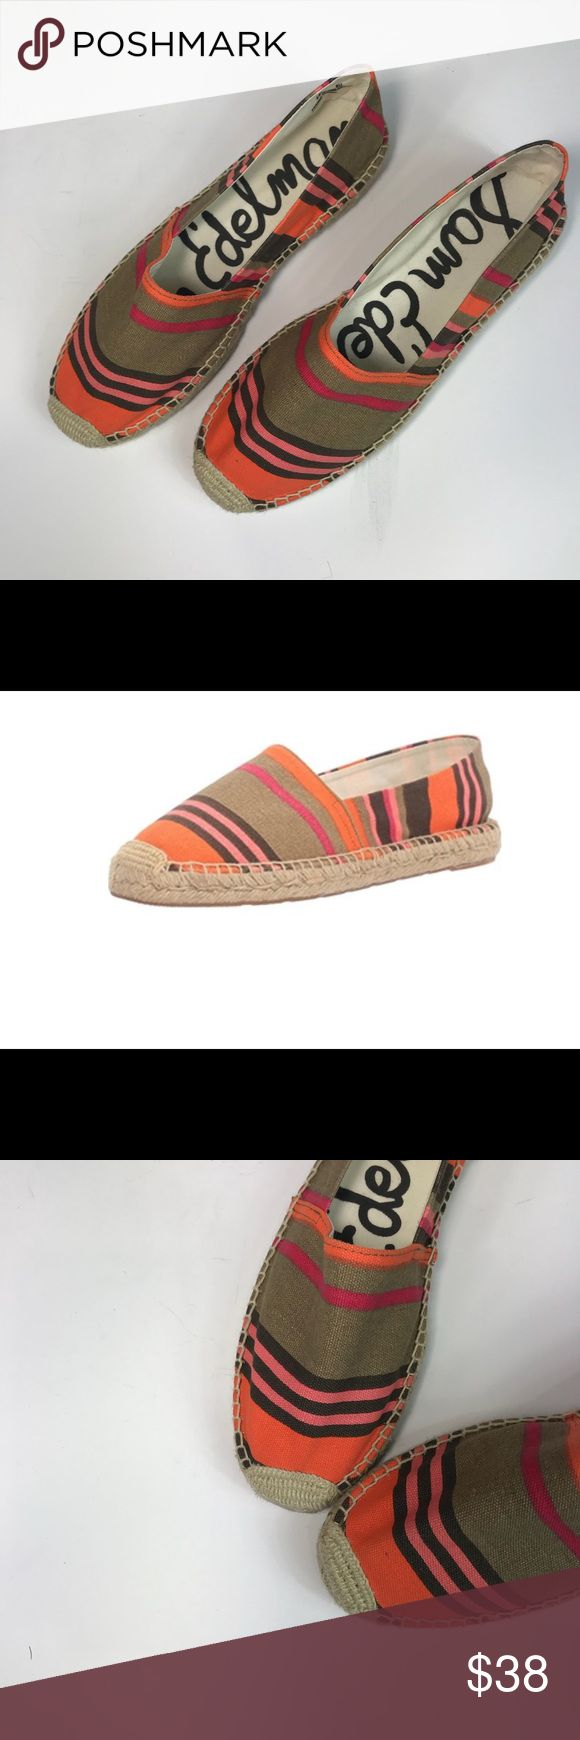 """Sam Edelman Espadrille NWT Sam Edelman Espadrille in Verona Slip on Style NWT  Never been worn Fits True to Size Measurements  Heel Height: .0.75""""   ❌🐱🐶🚭 or TRADES ❌ imperfections, holes, rips or tears Sam Edelman Shoes Espadrilles"""